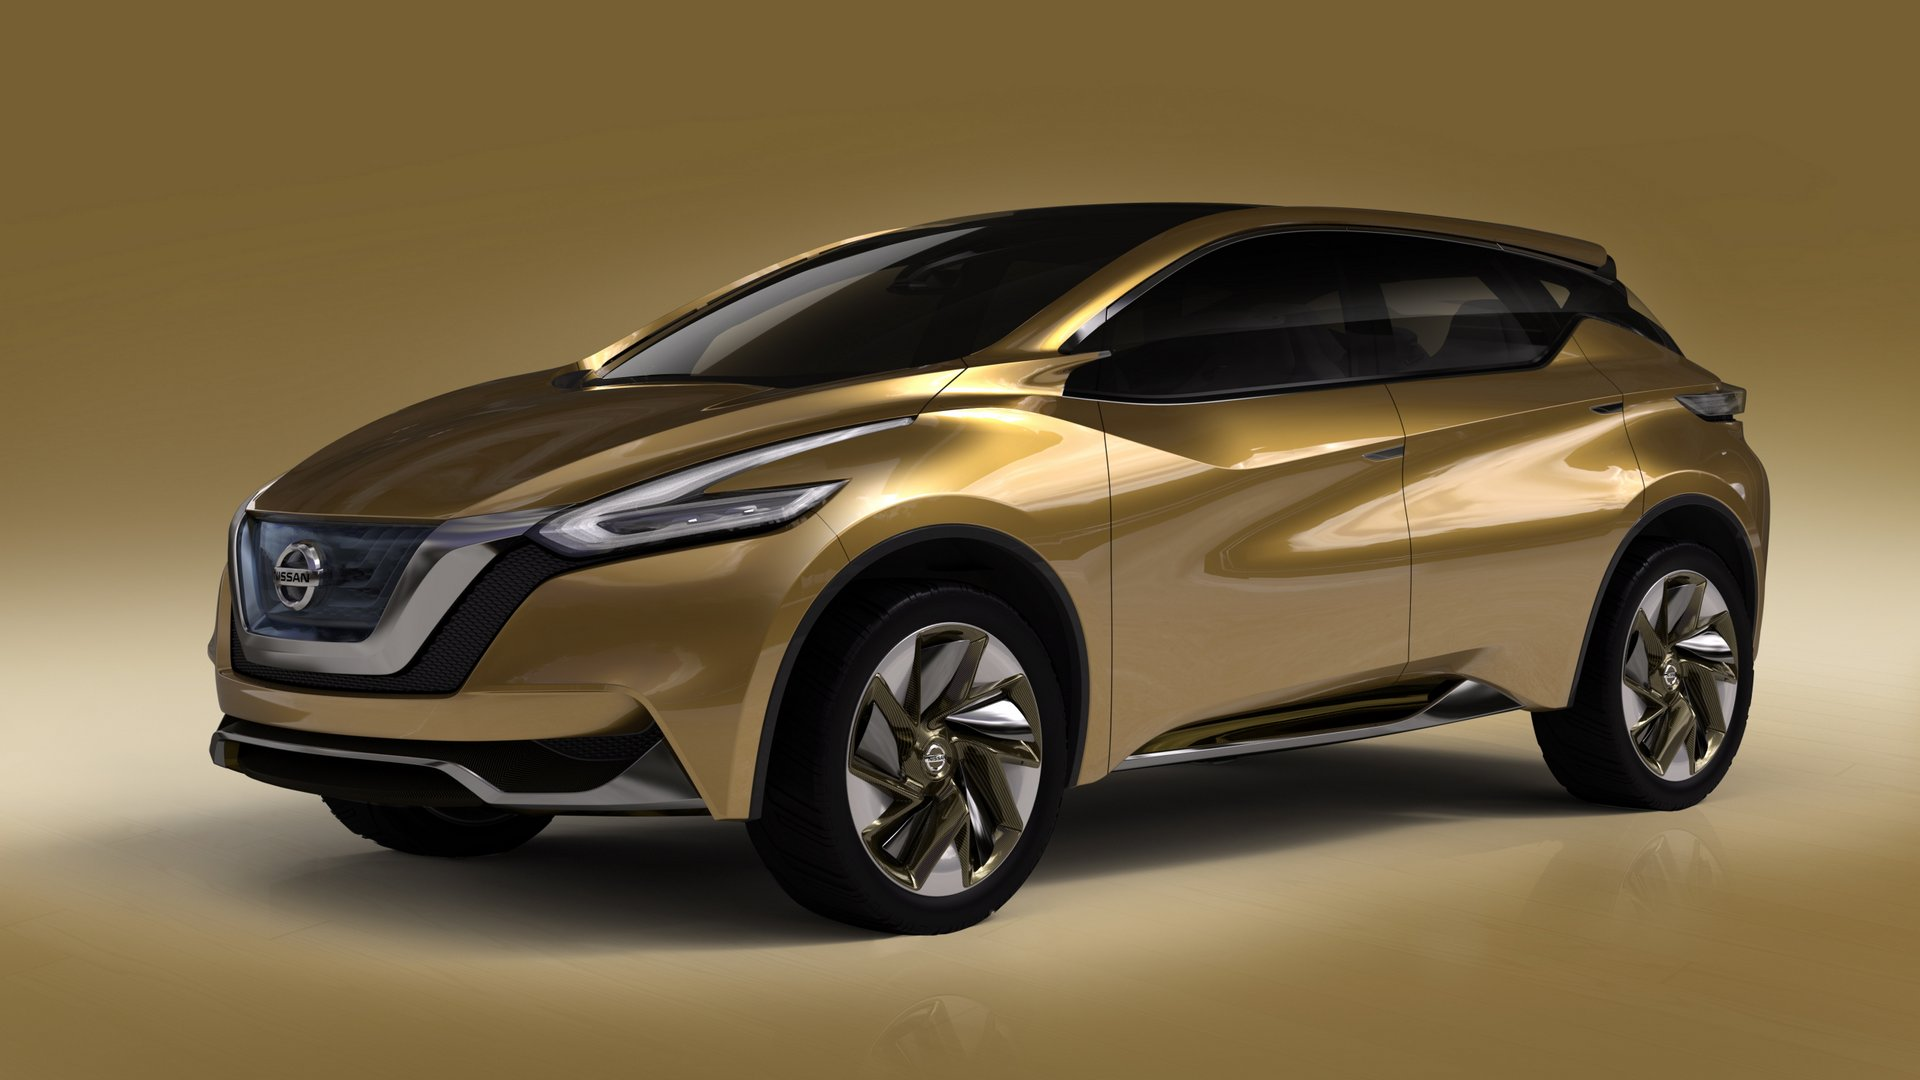 nissan cars news resonance concept hints at future suv. Black Bedroom Furniture Sets. Home Design Ideas